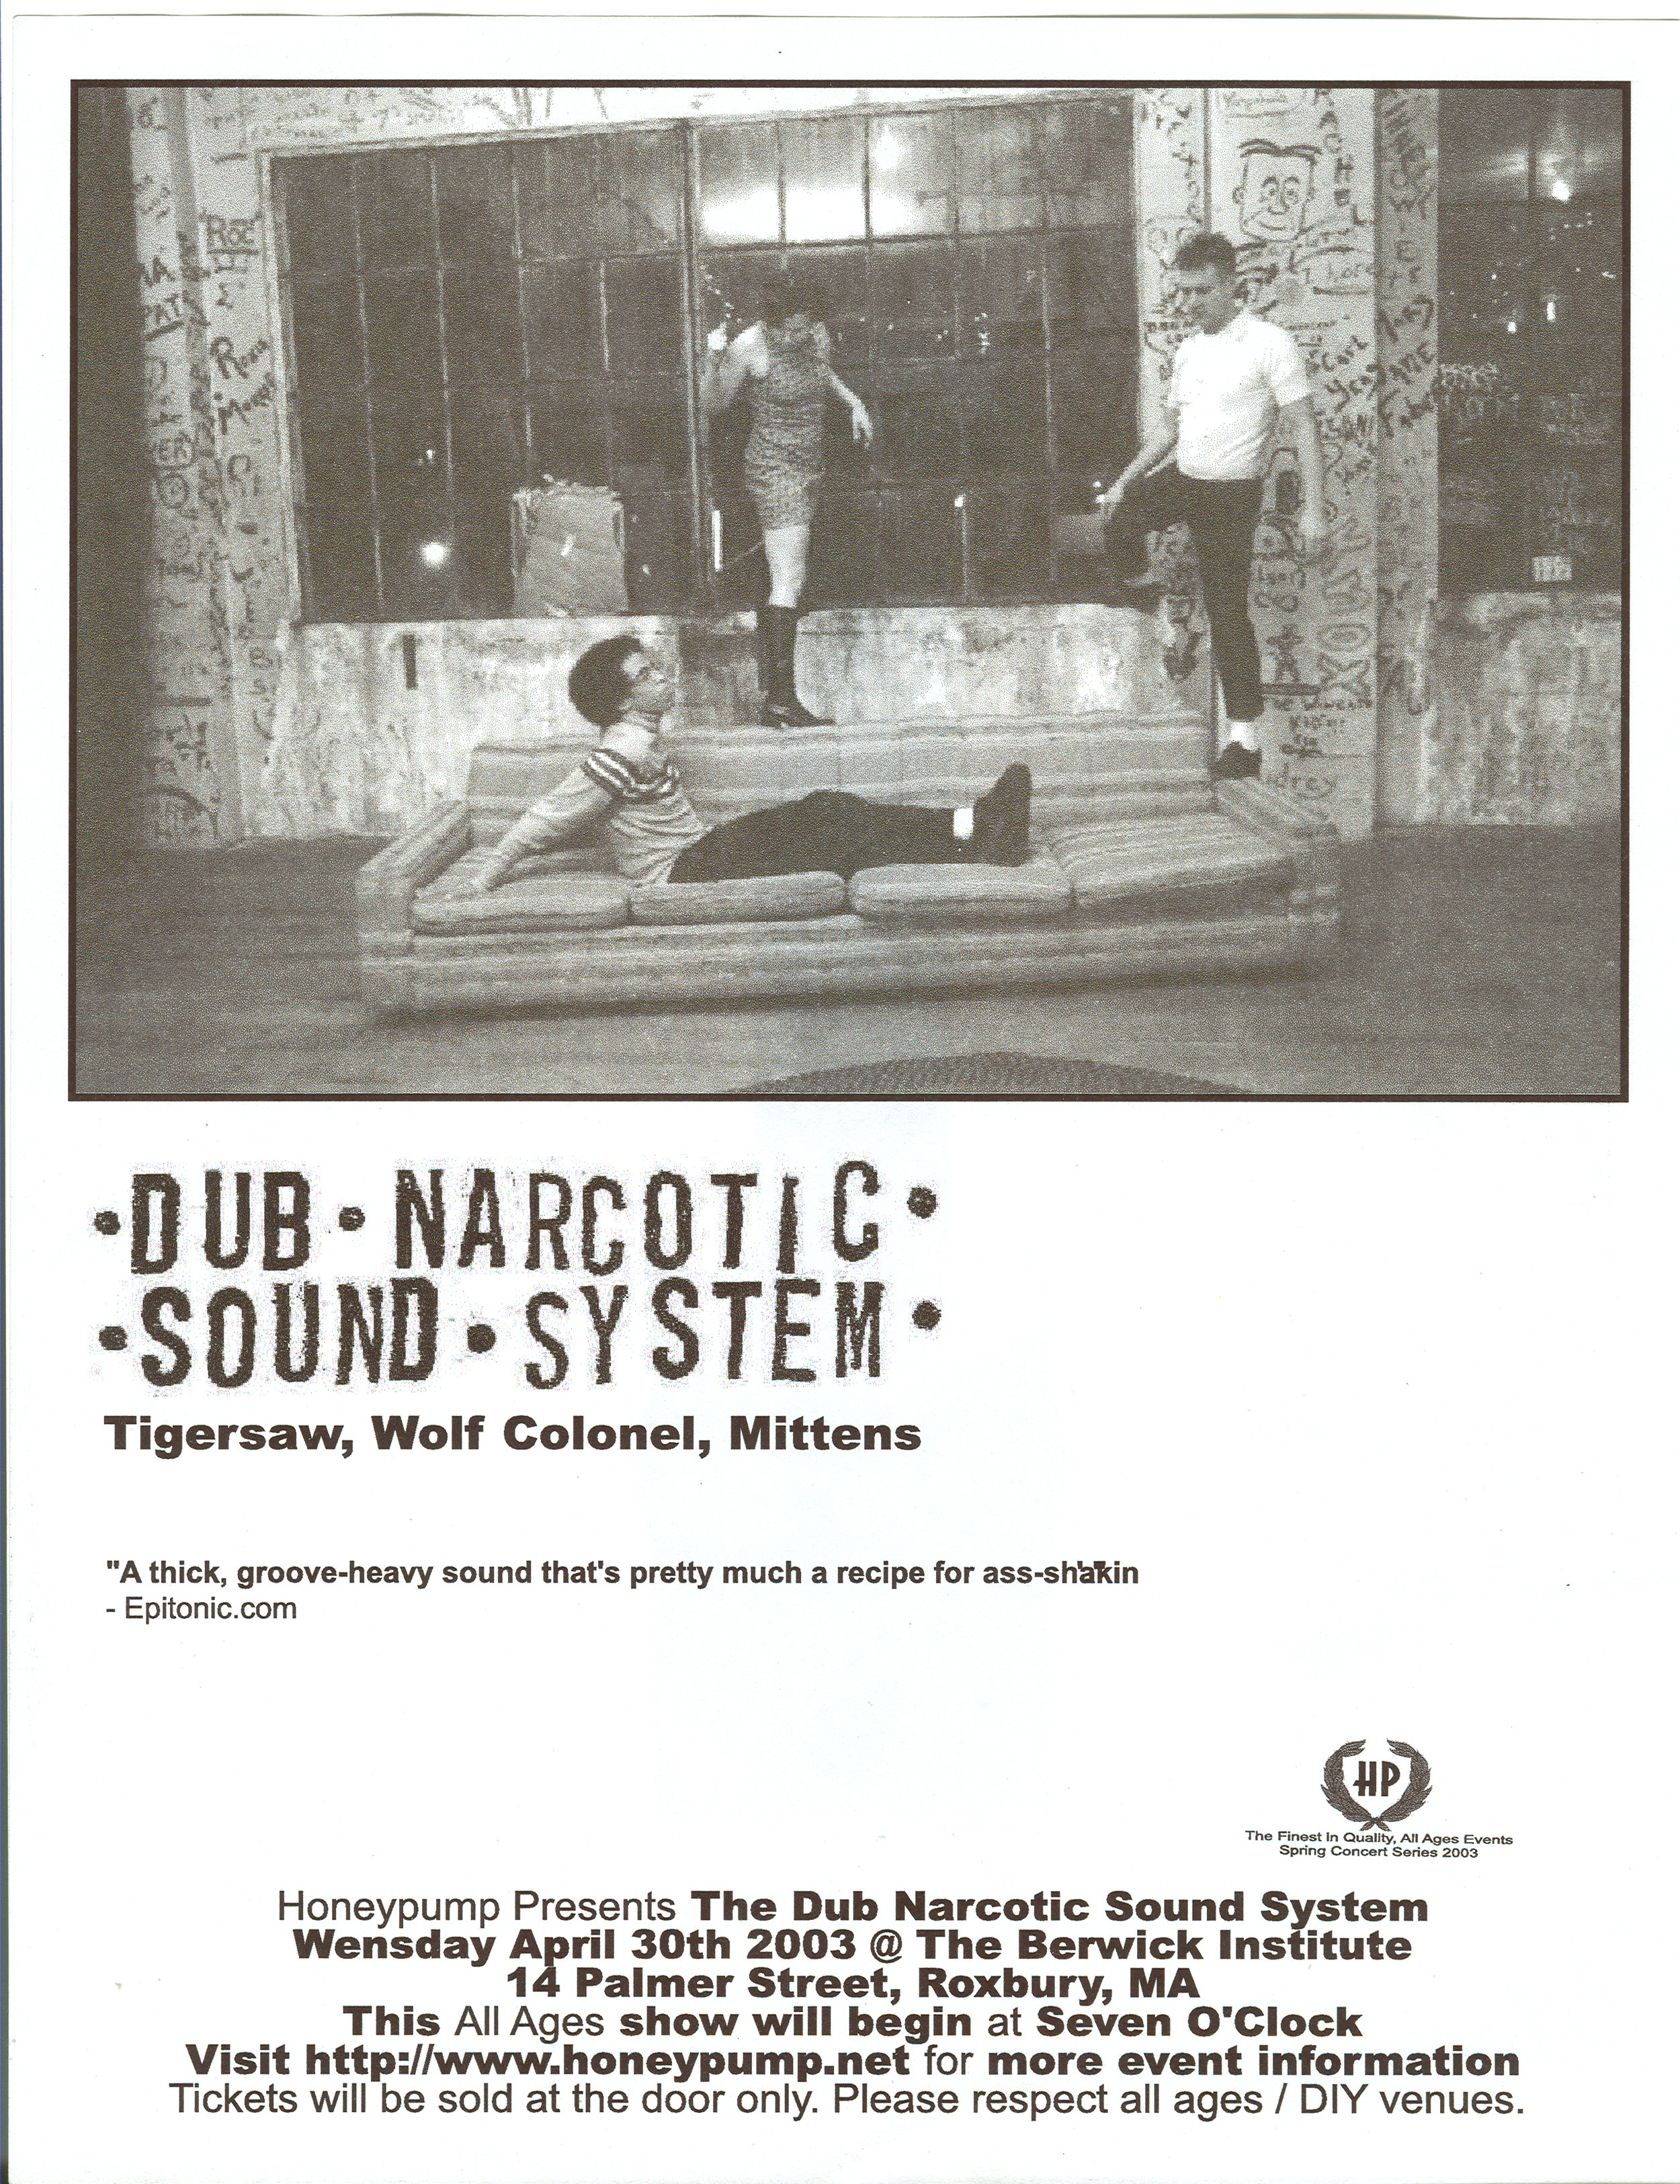 04.30.03-BOSTON-BERWICK-DUB_NARCOTIC.jpg